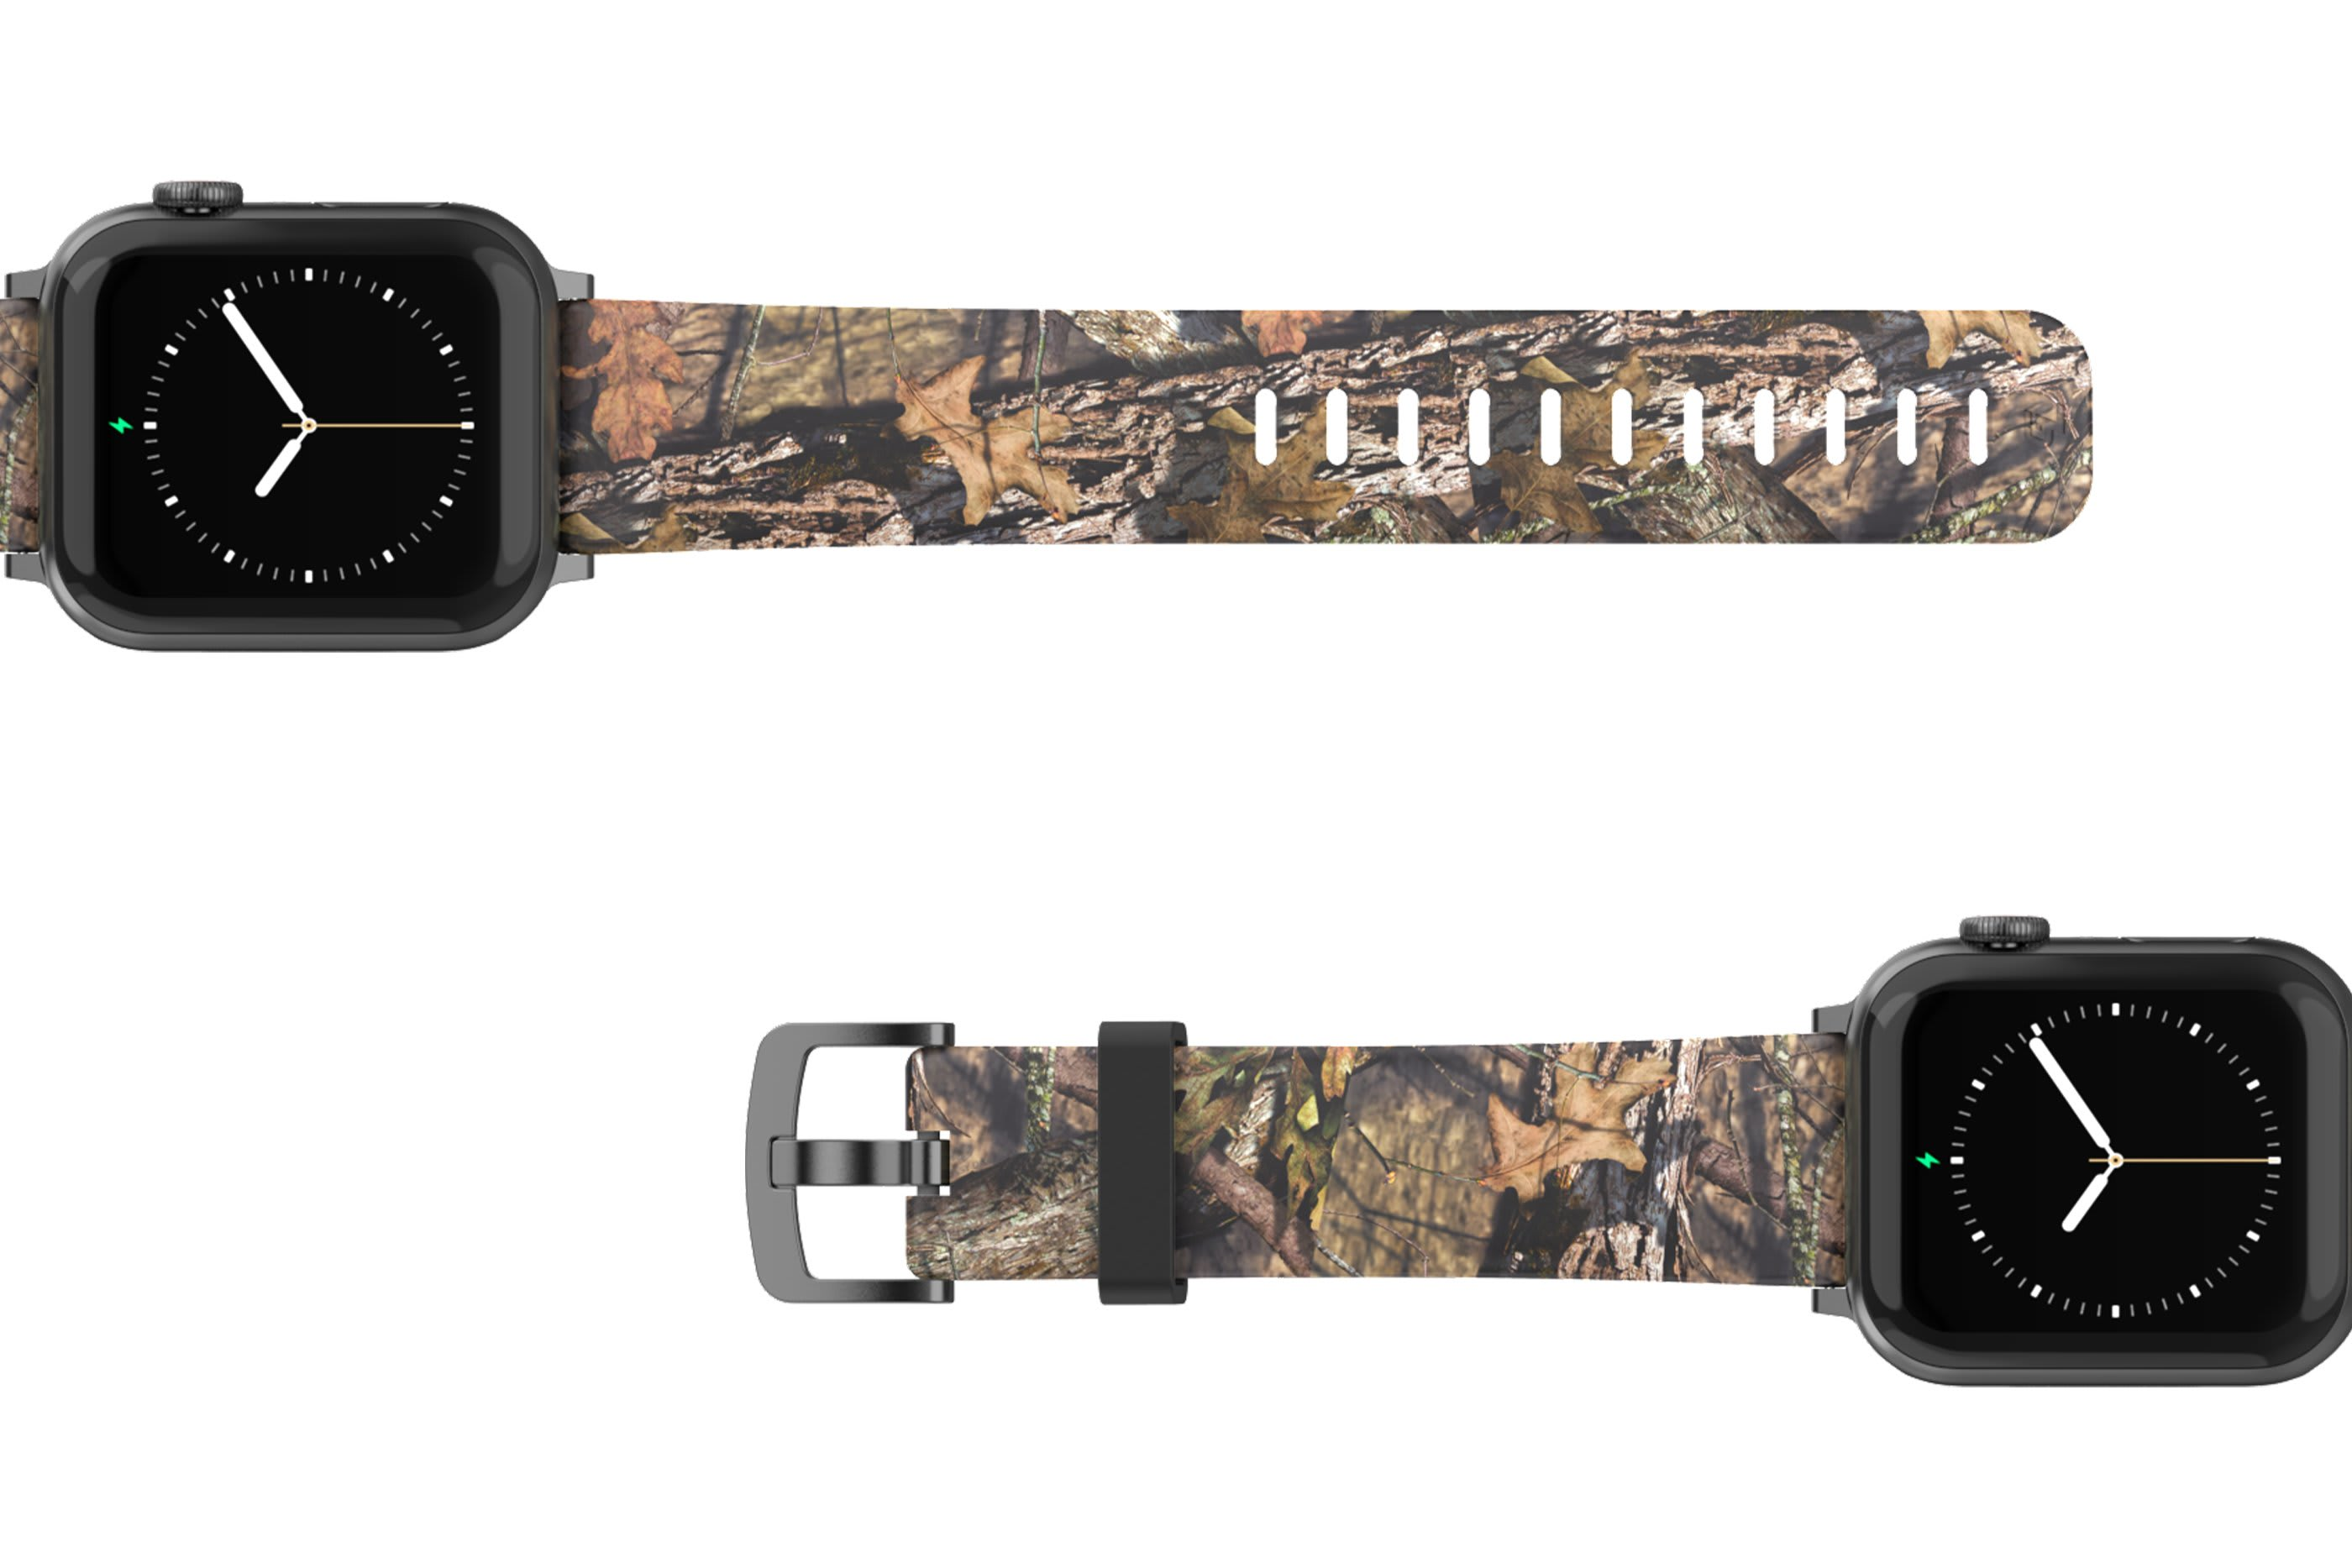 Mossy Oak Breakup Apple Watch Band with gray hardware viewed top down